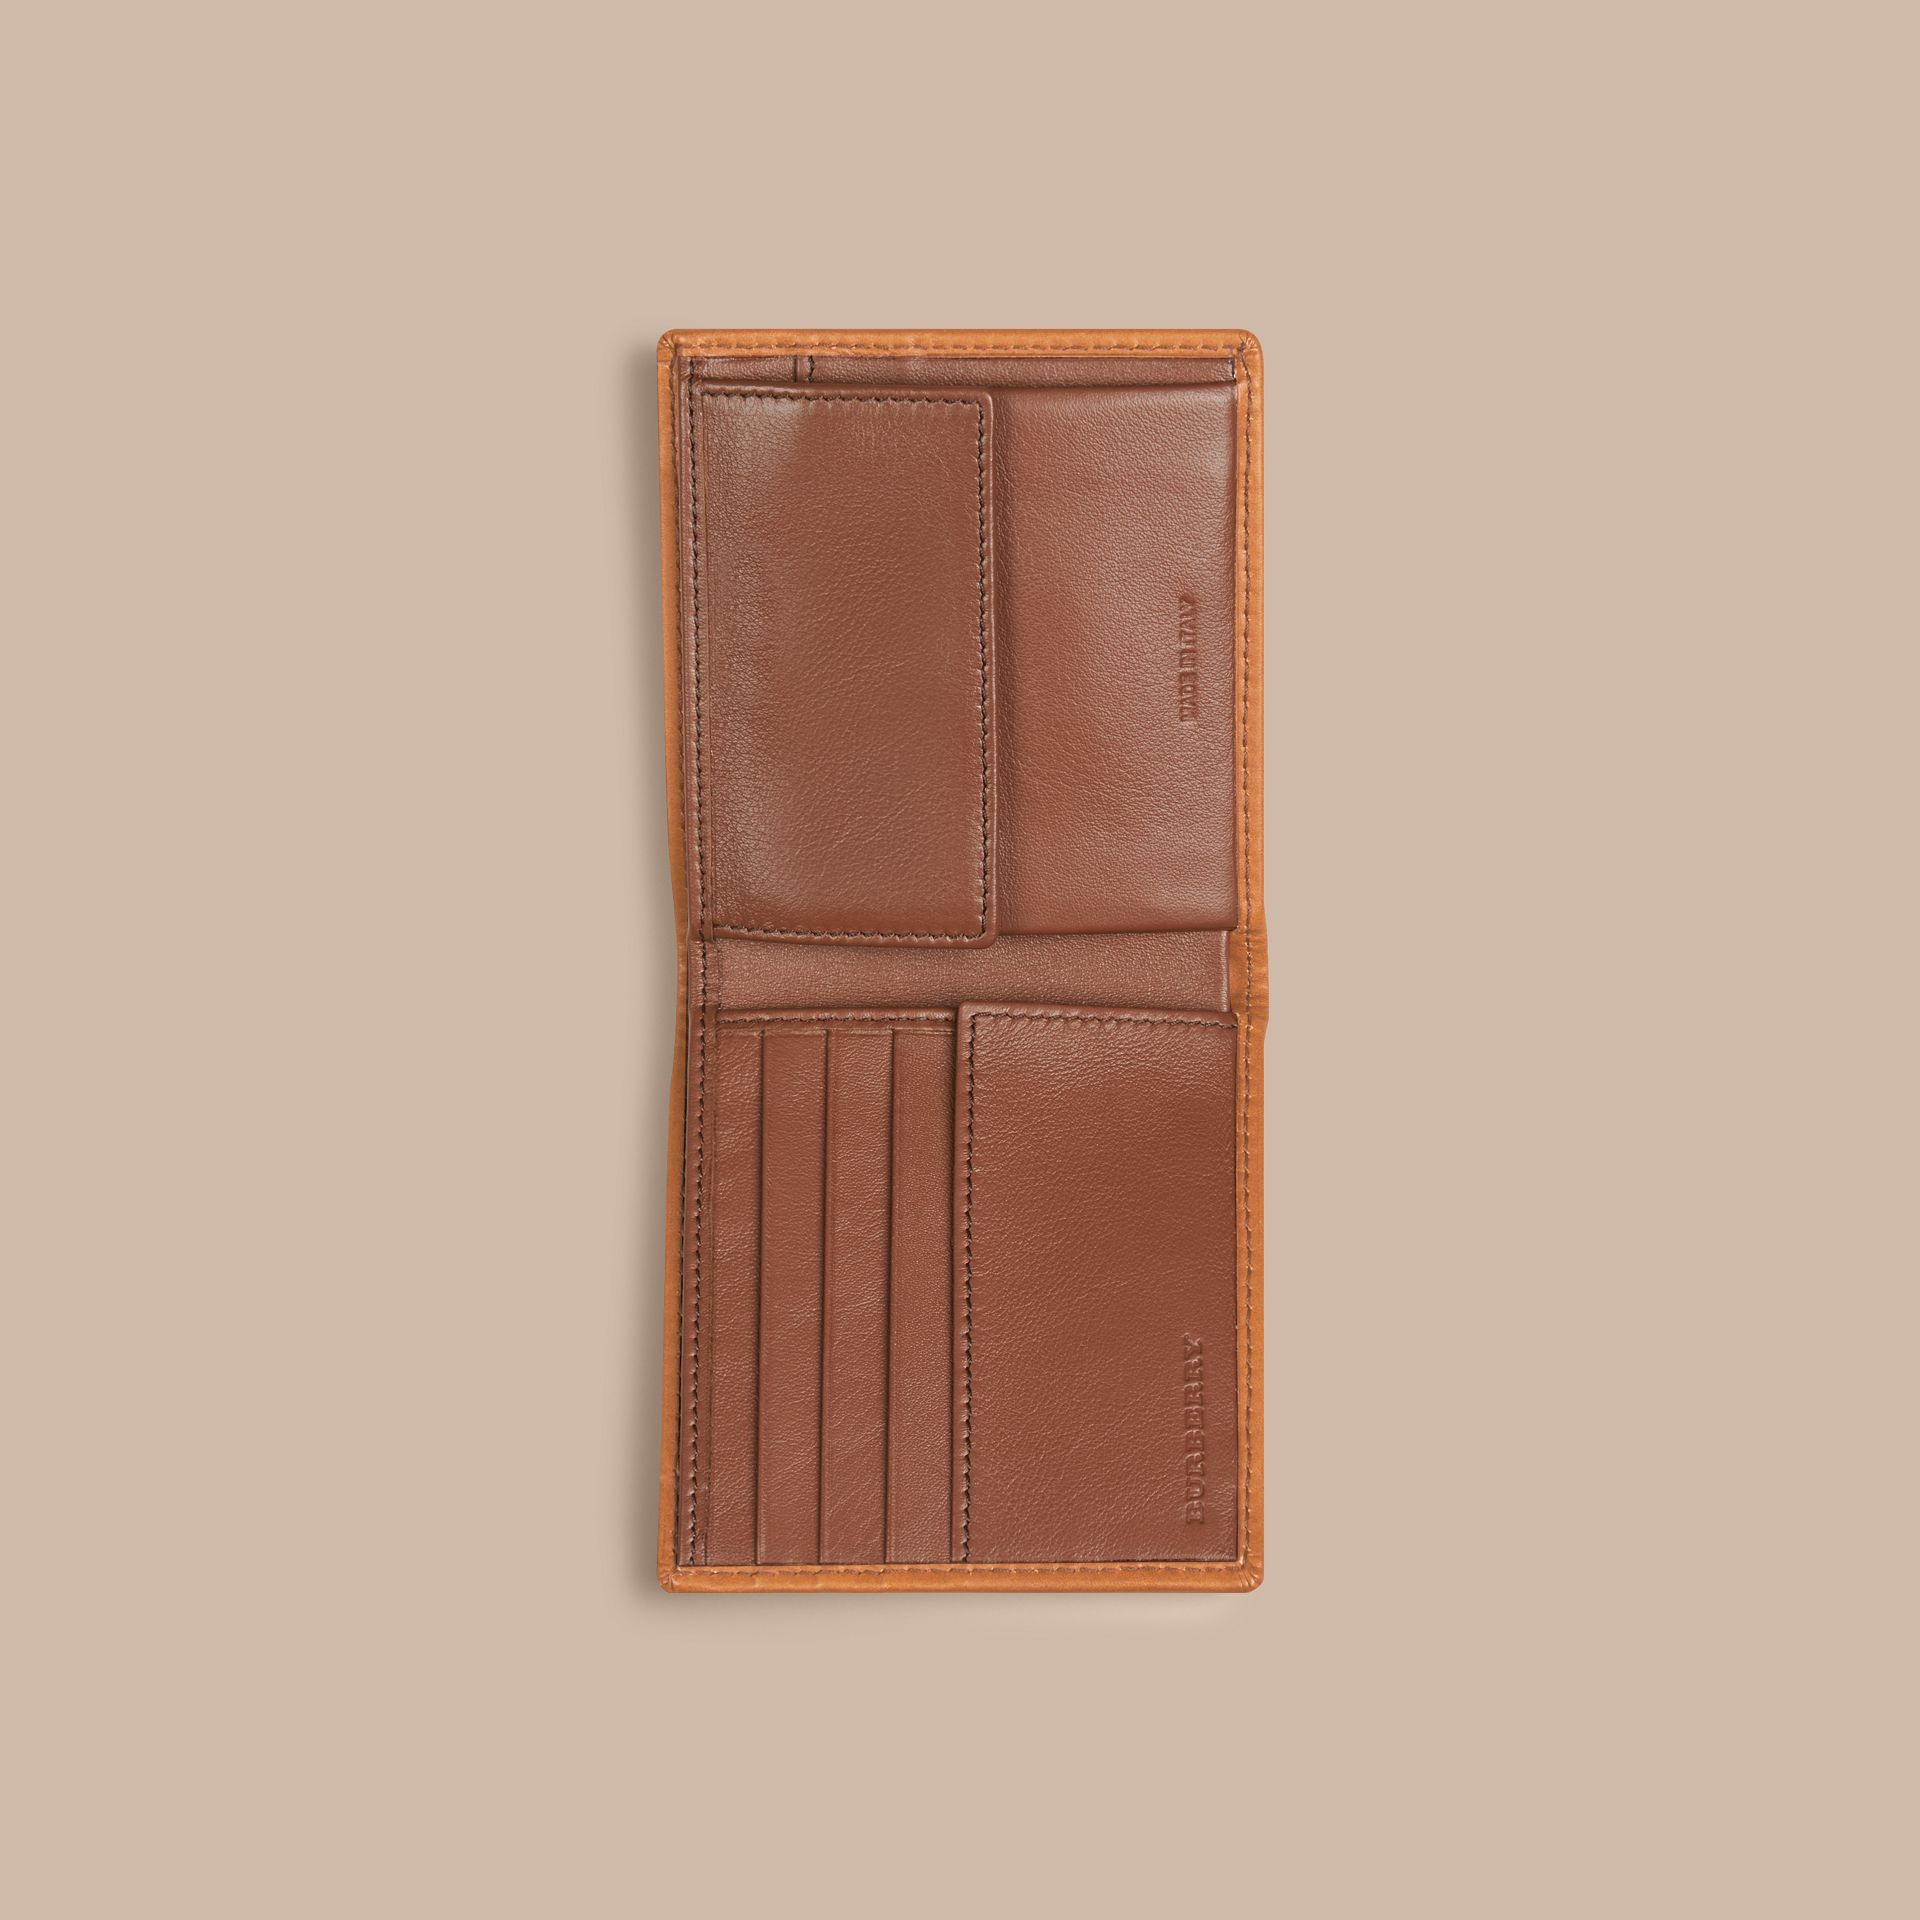 Horseferry Check International Bifold Coin Wallet in Tan - gallery image 4